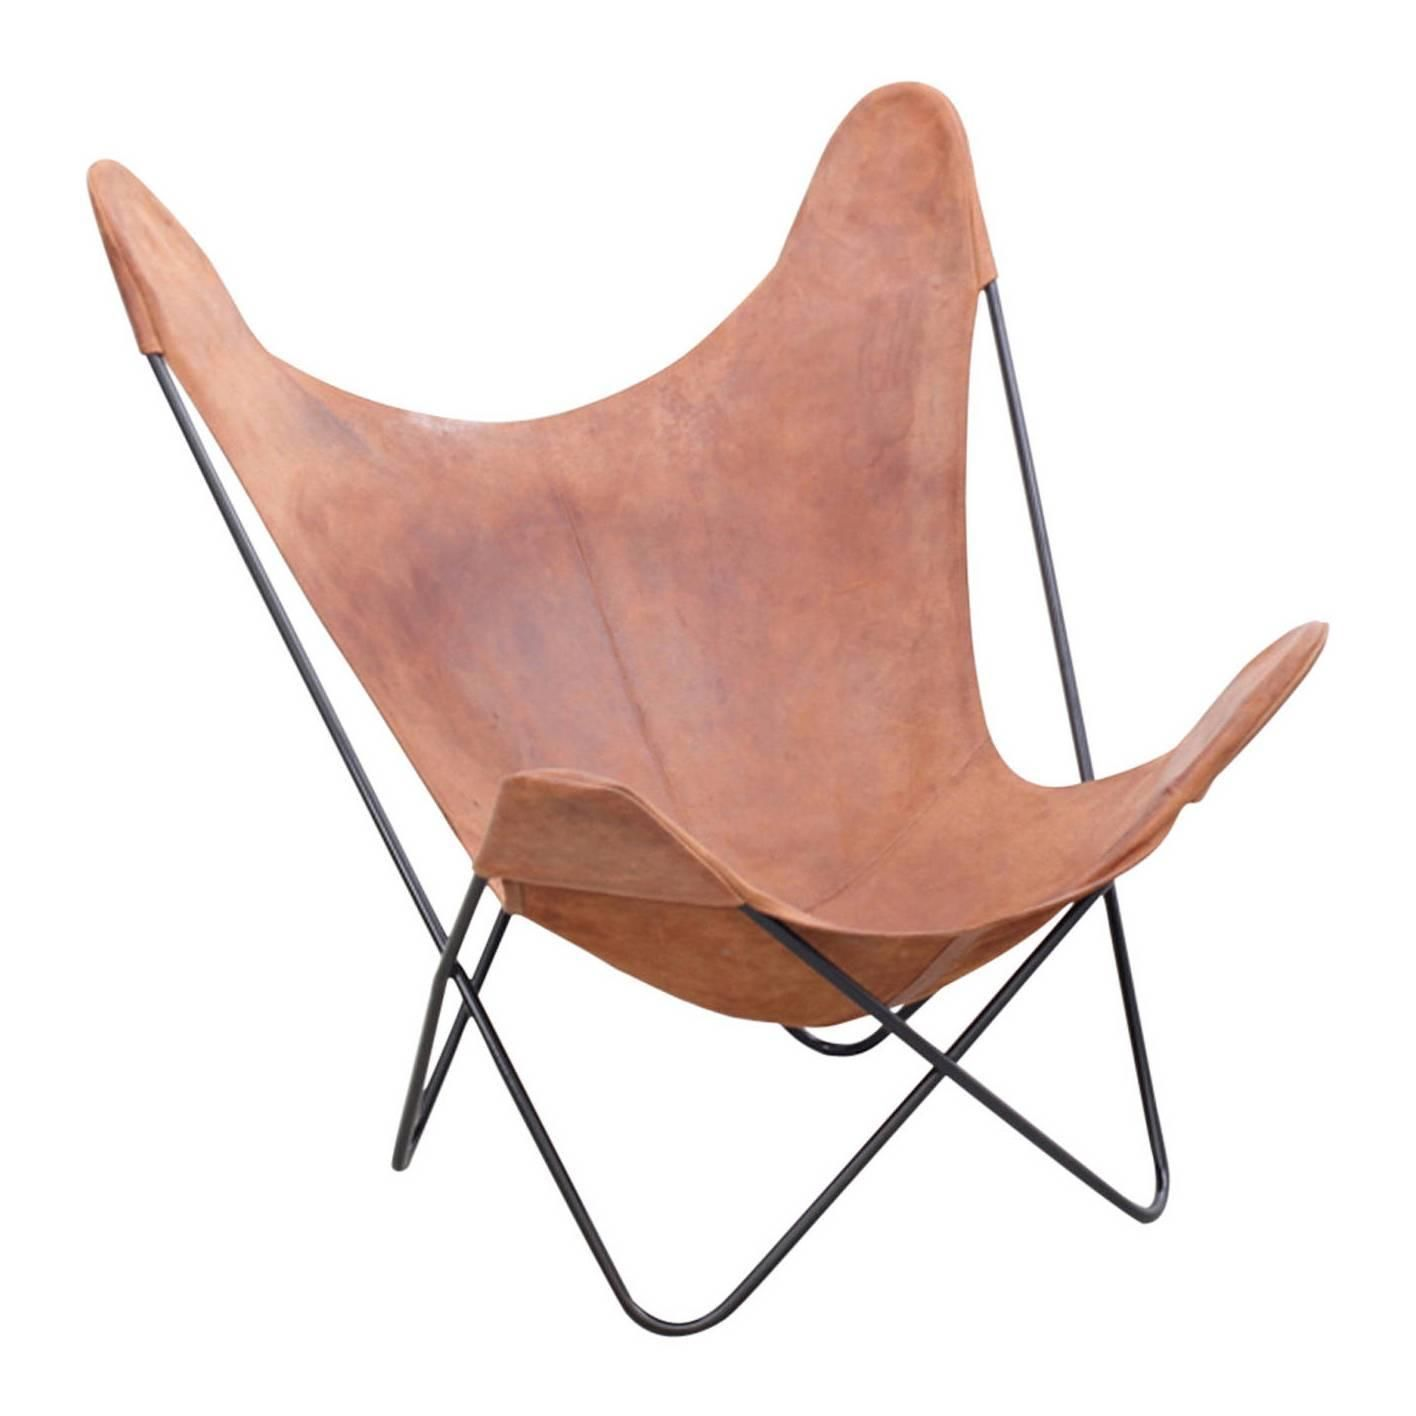 Vintage Hardoy Butterfly Chair in Original Leather